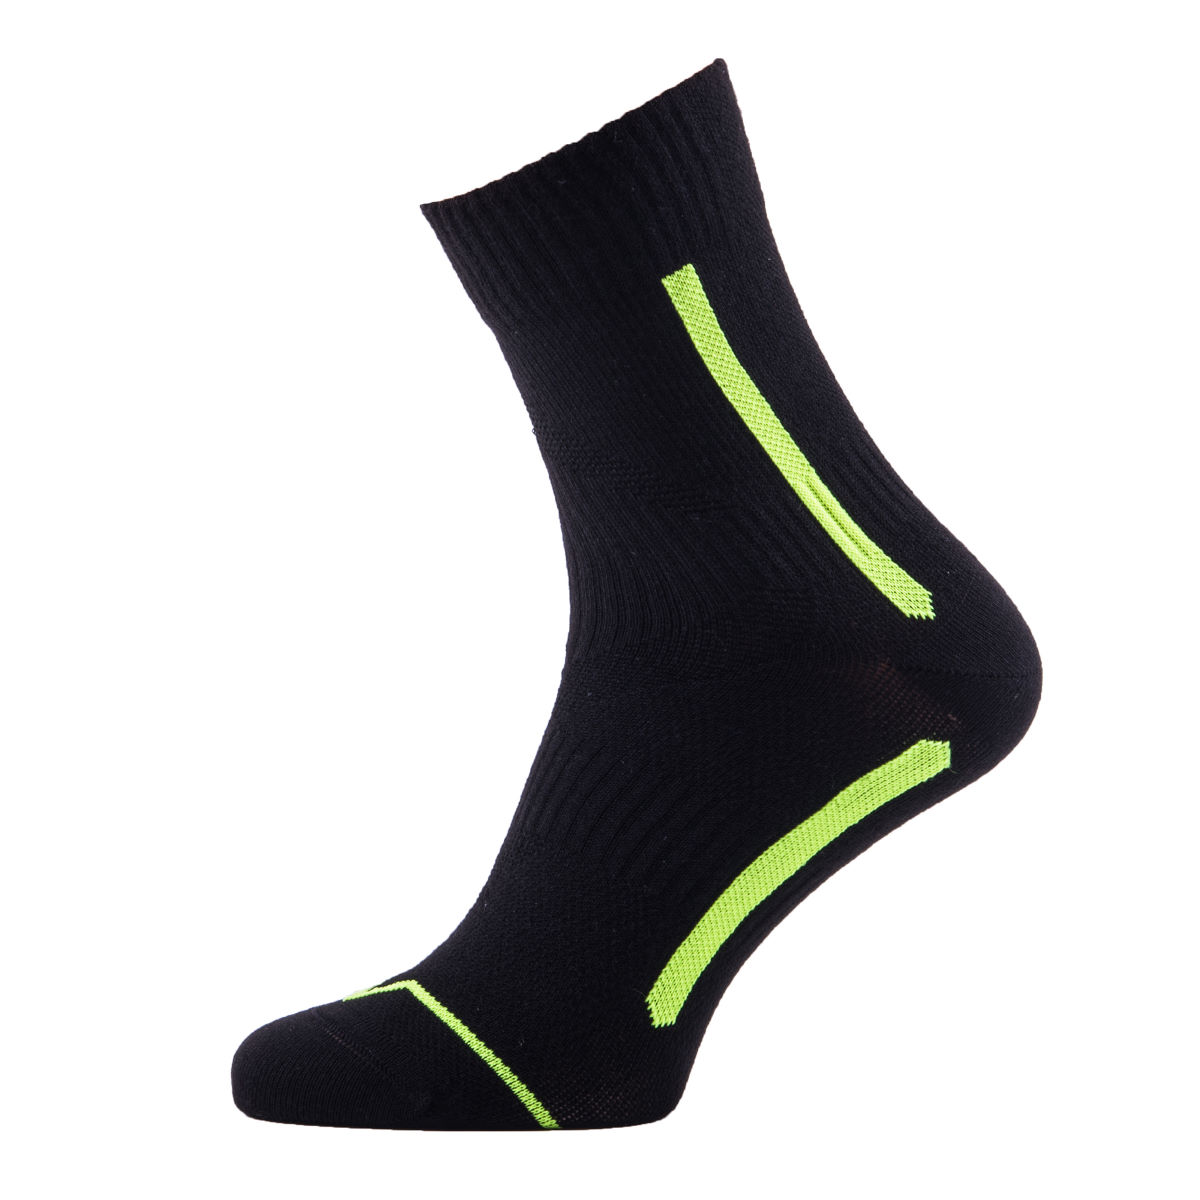 SealSkinz Road Max Ankle Socks   Cycling Socks